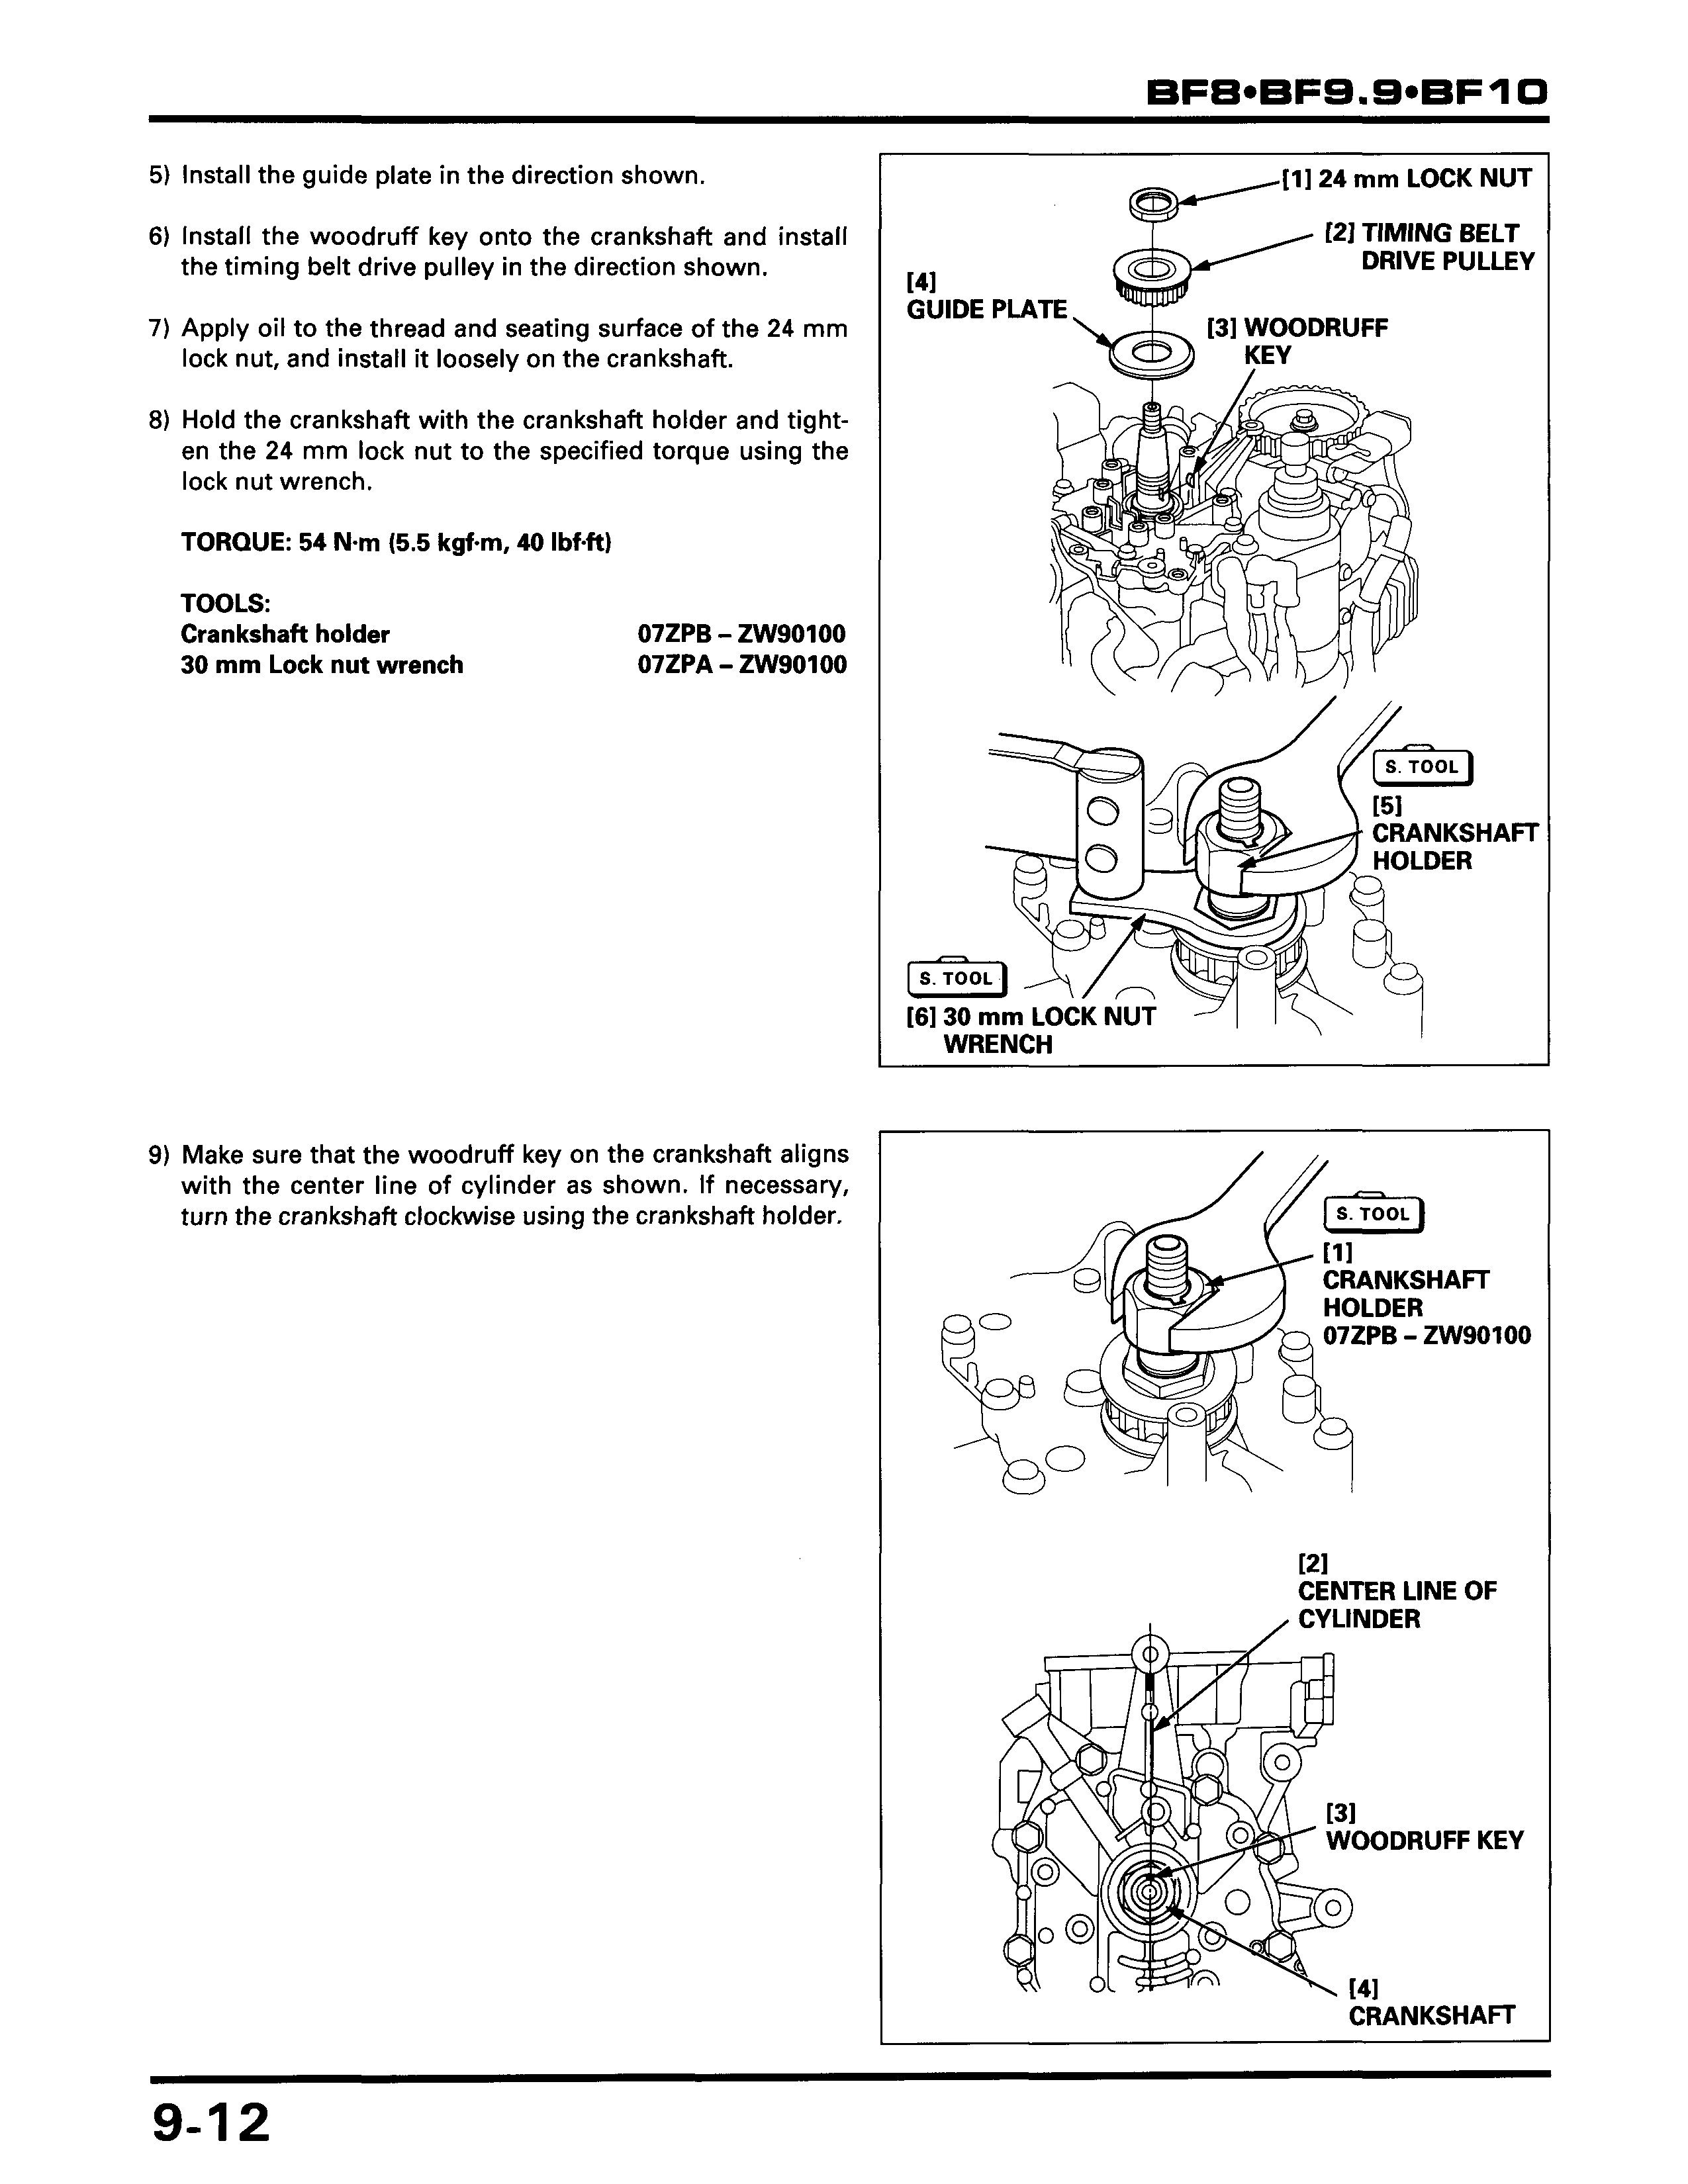 honda bf8a 8hp 4 stroke set timing bzbc1800392 Mercury Outboard Repair the timing marks, and everything you need to follow is right there on those 3 pages